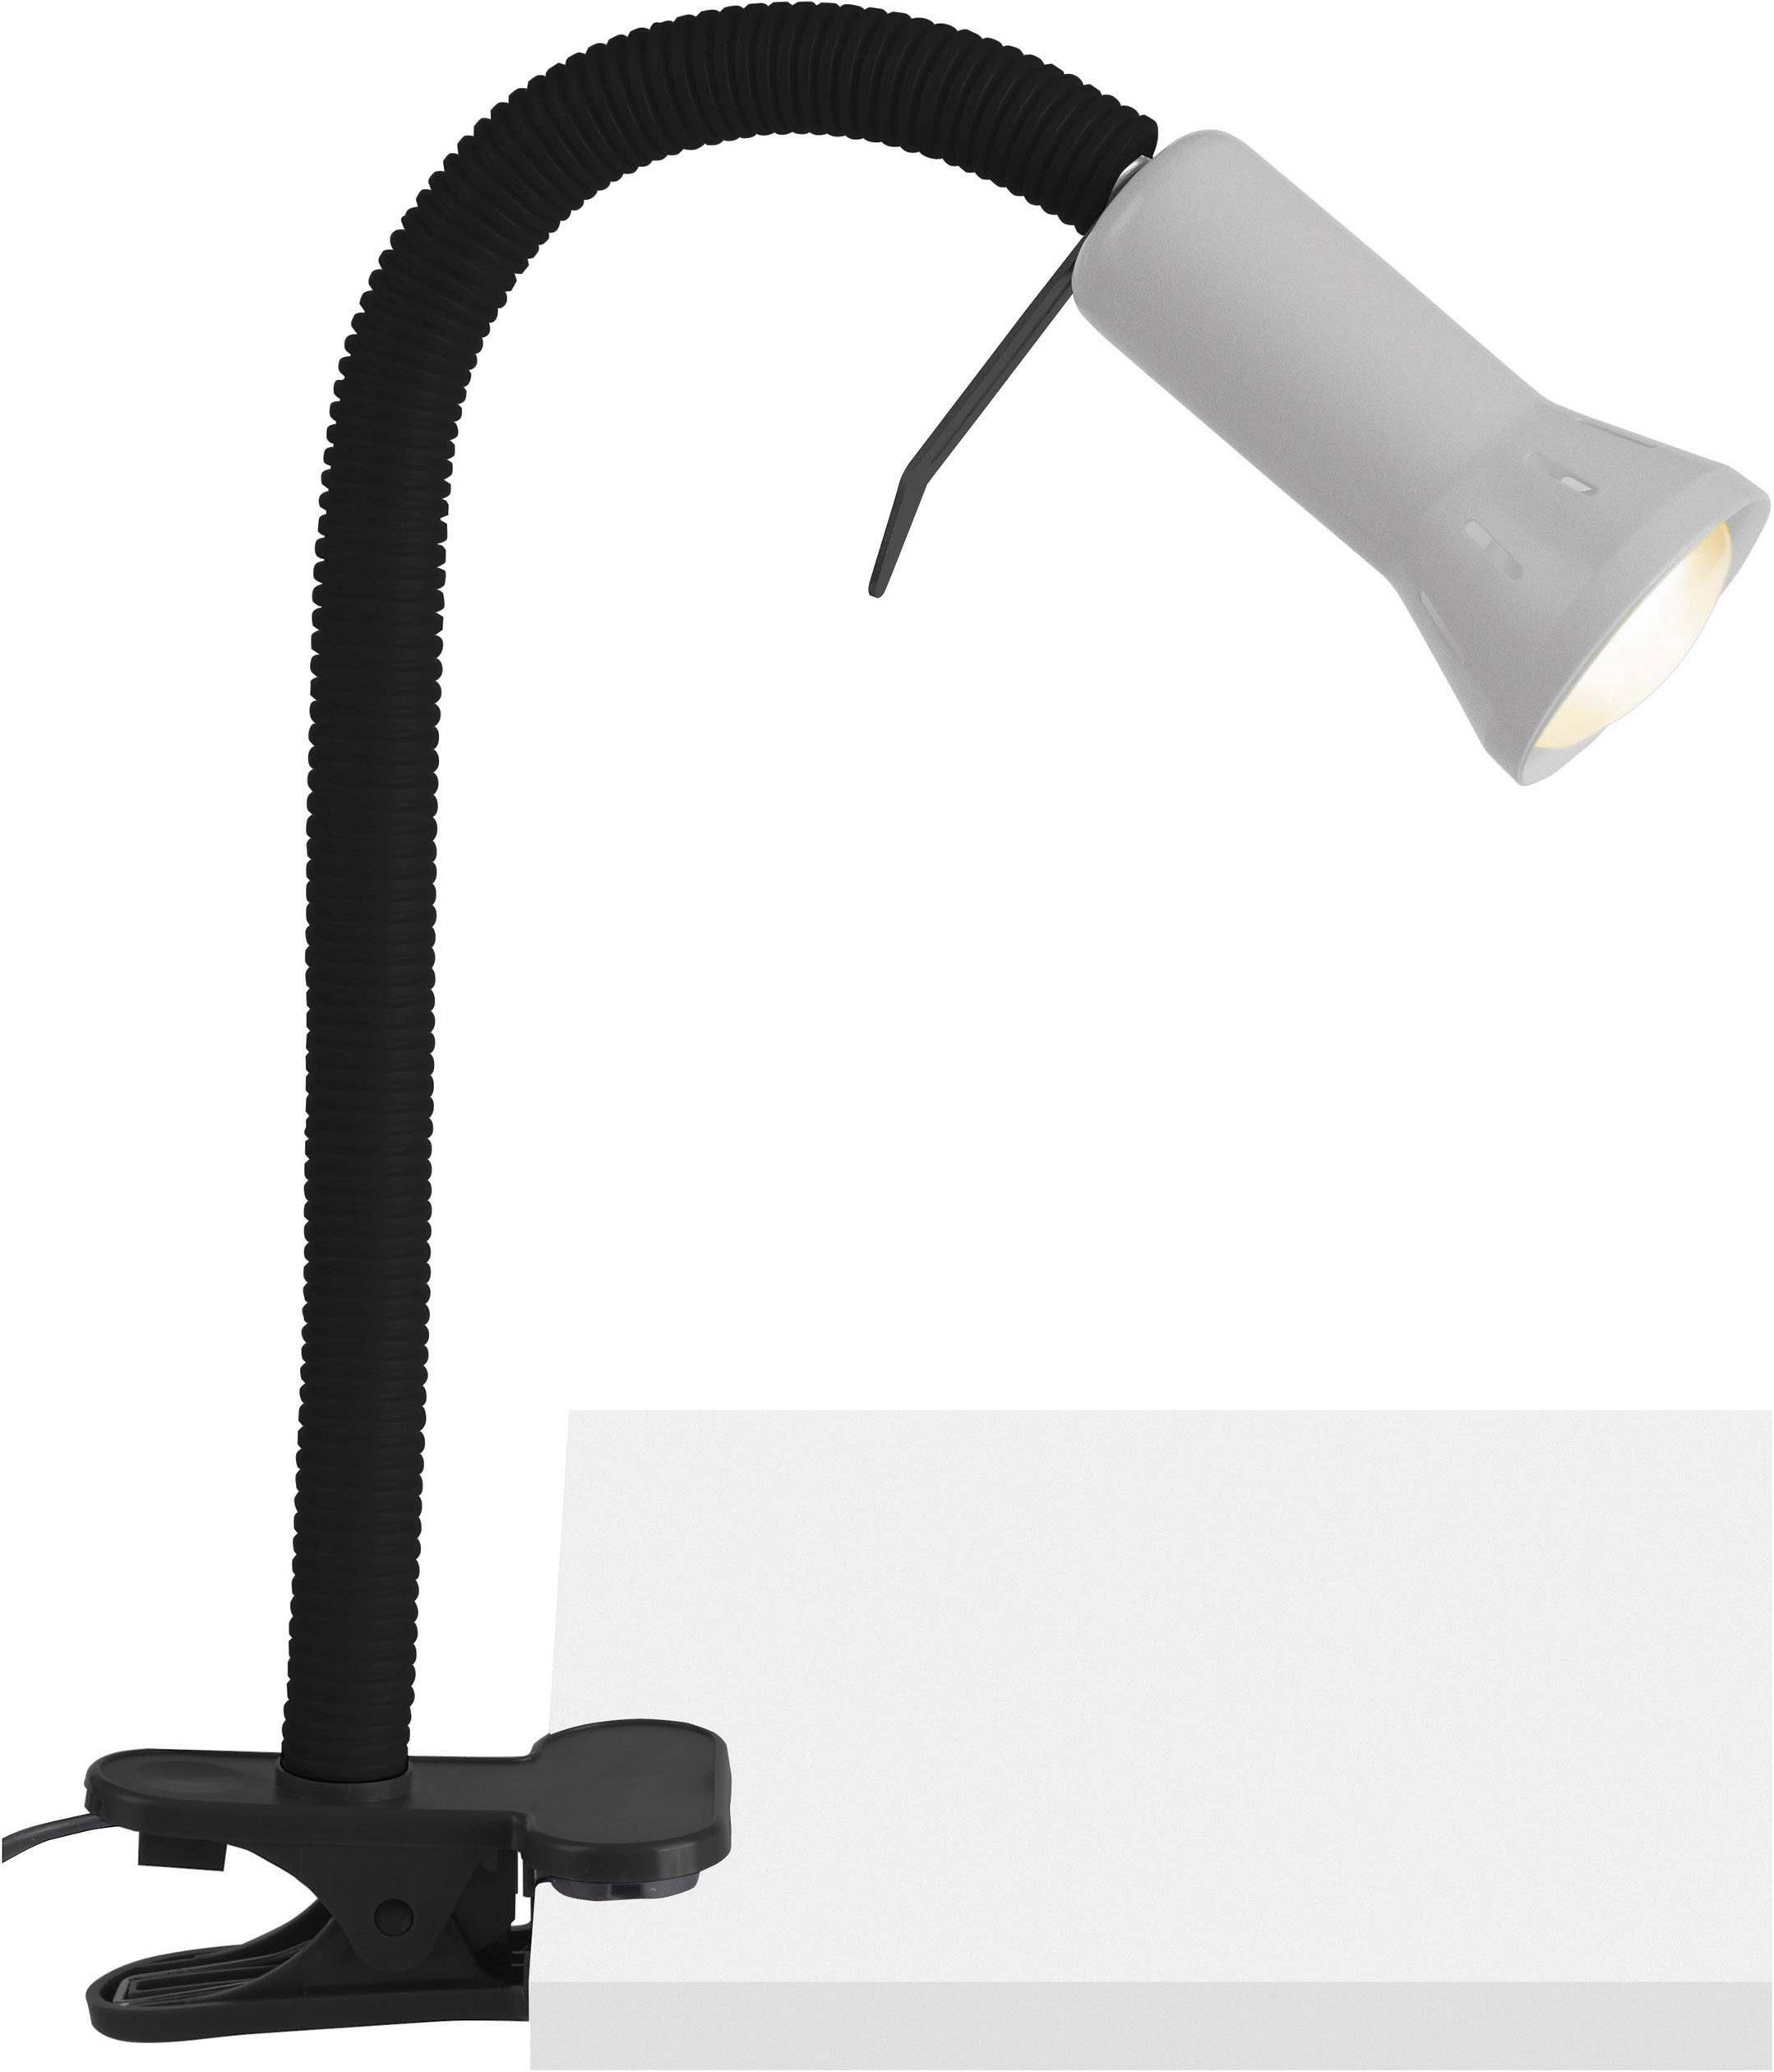 Staalblauw Woonkamer Affordable Affordable Free Brilliant Antony Klemlamp E W